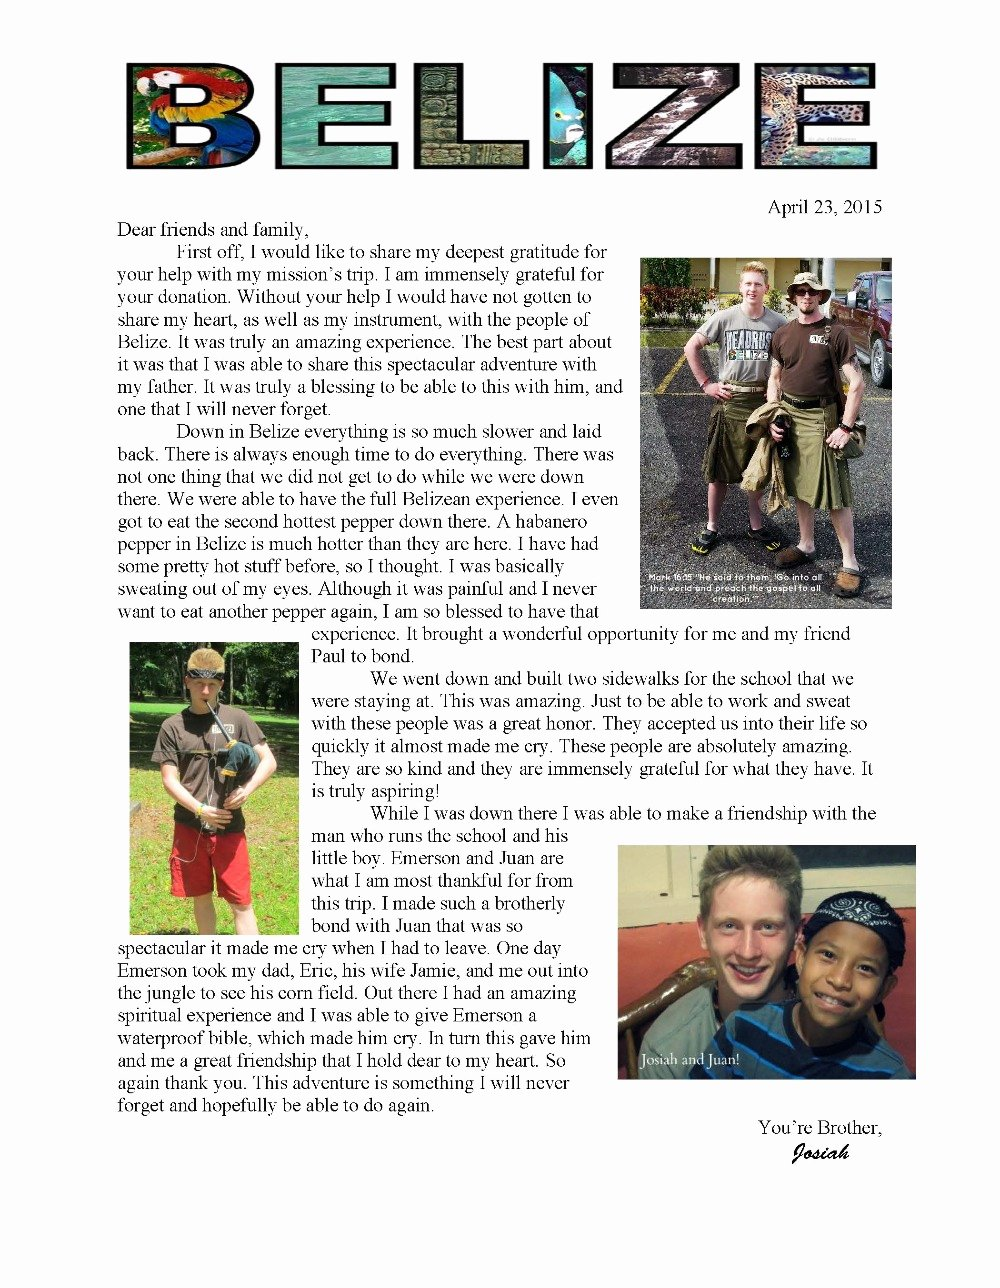 Missions Trip Support Letter Lovely Fundraiser by Carolyn Mckeon Josiah S Belize Mission Trip